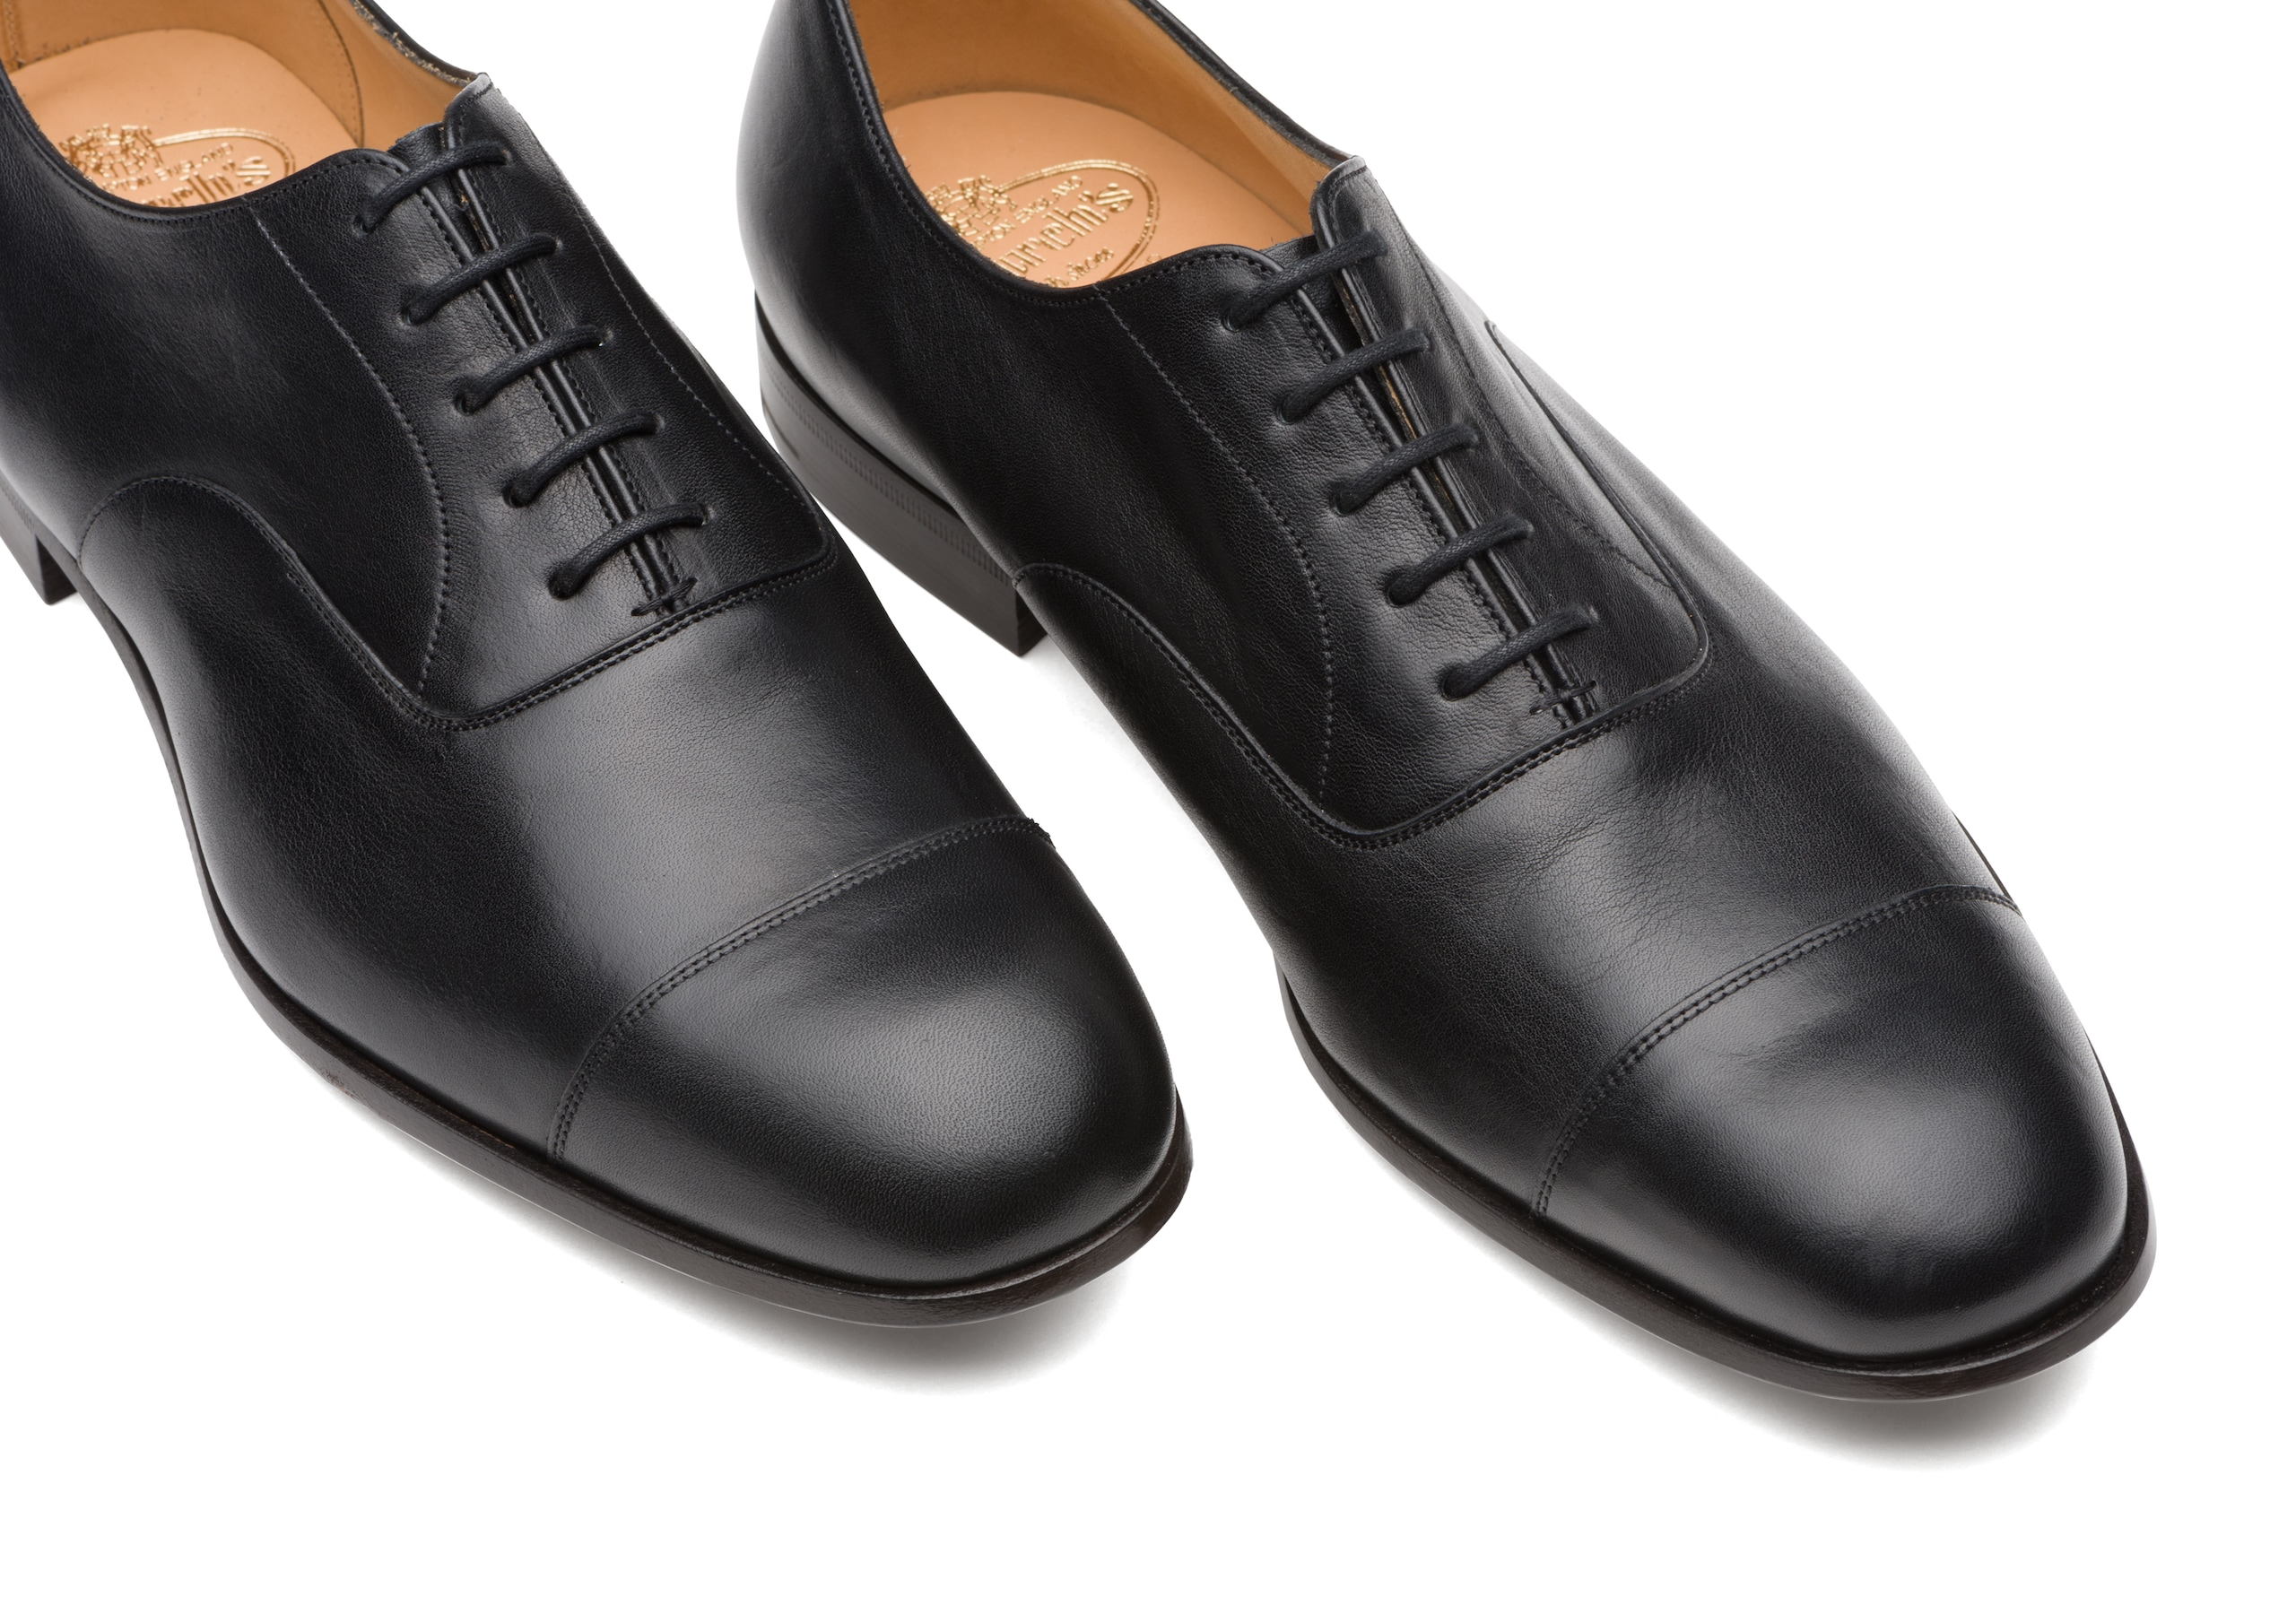 Dingley Church's Vintage Calf Leather Oxford Black